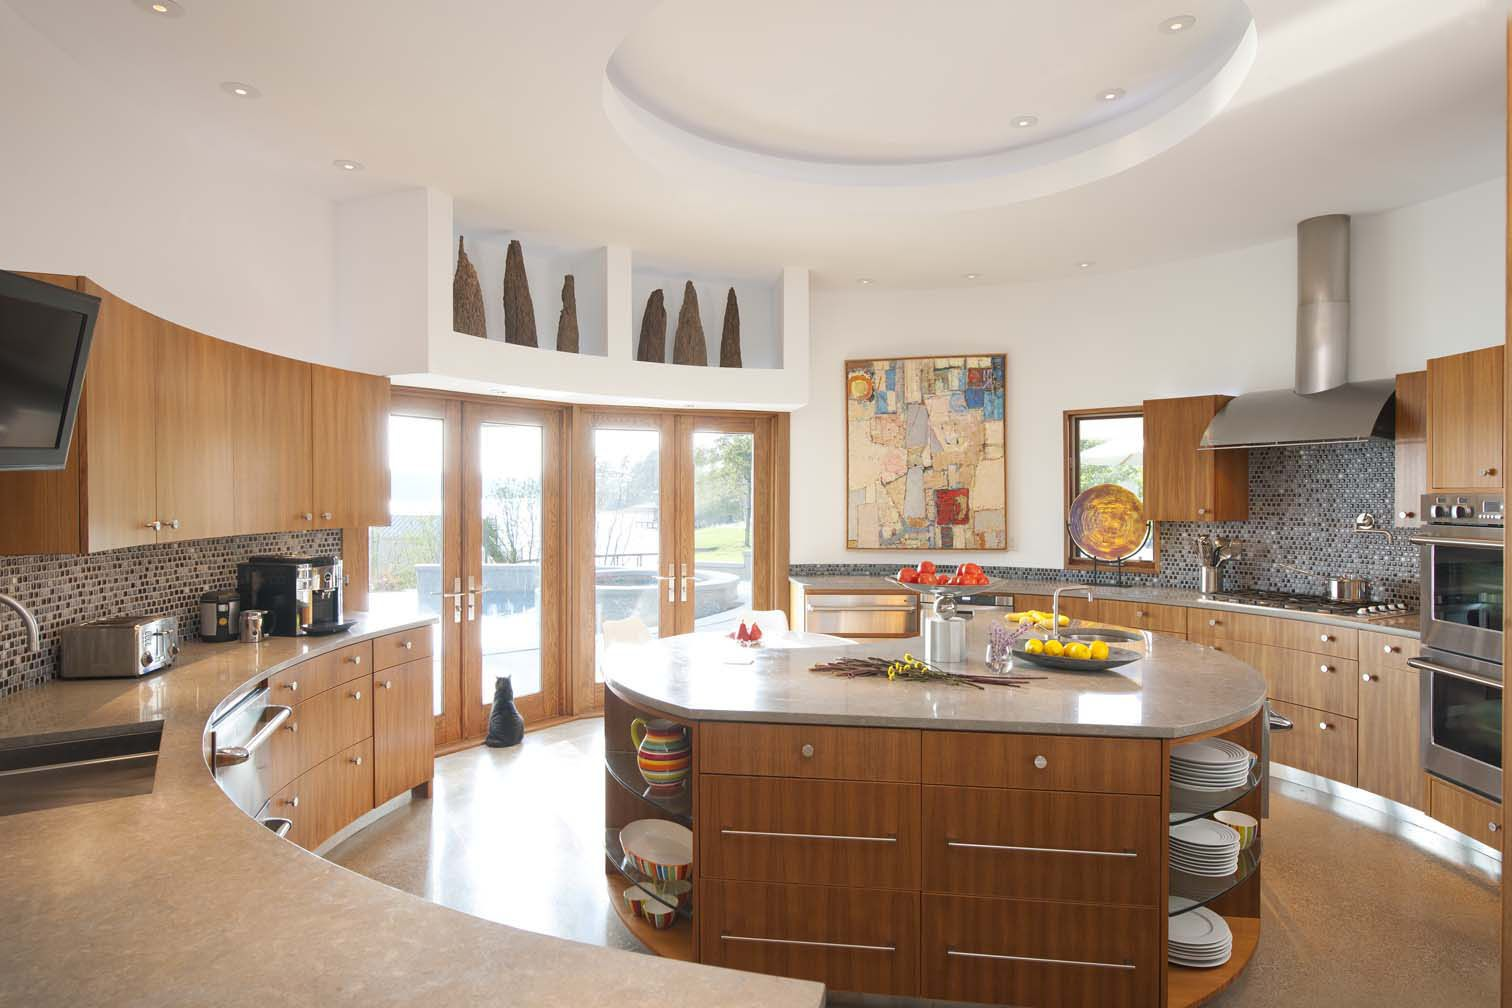 4 Frank Lloyd Wright Homes For Sale And They Re Awesome Curved Kitchen Contemporary Kitchen Kitchen Renovation